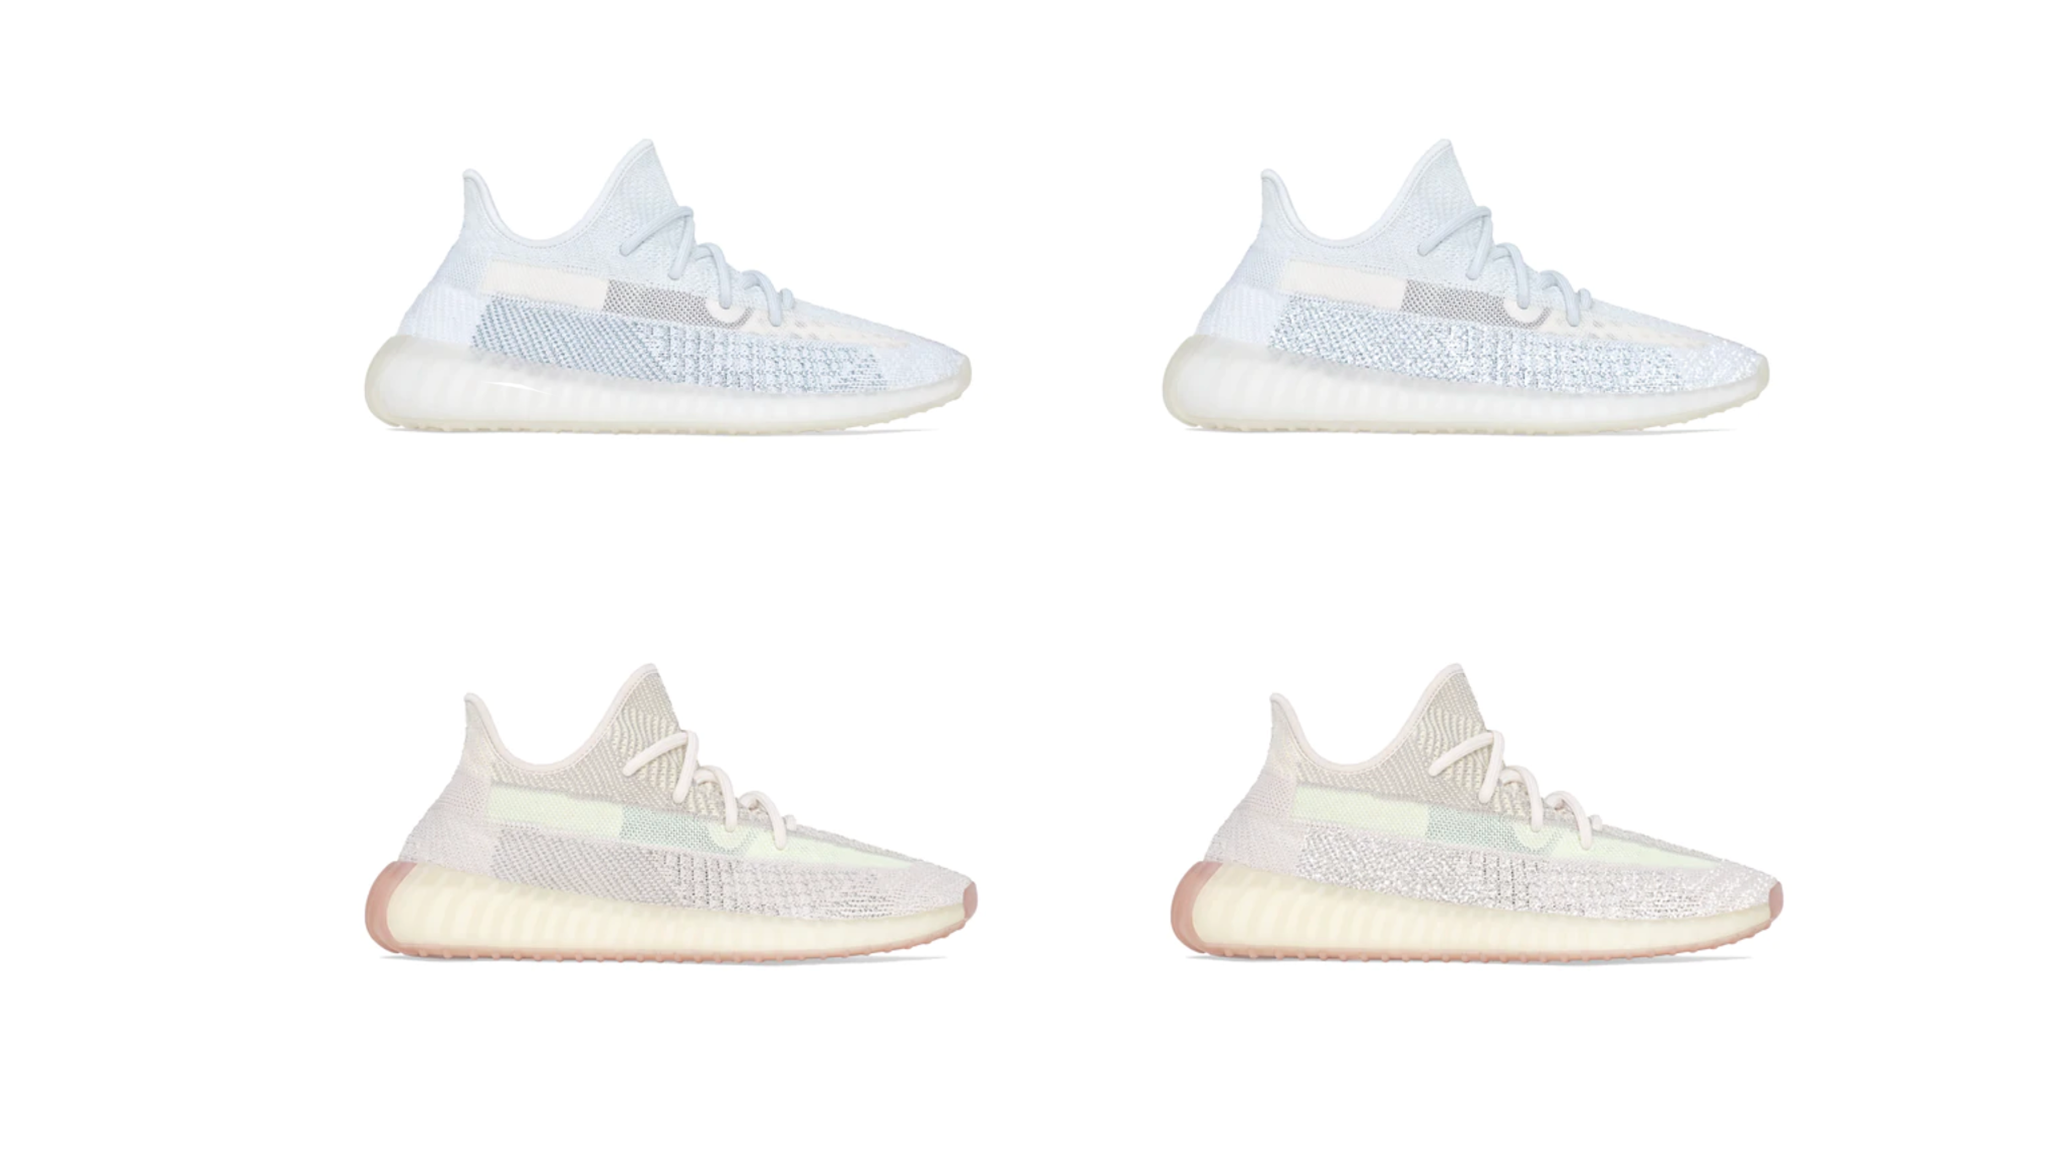 YEEZY BOOST 350 V2 PRE-ORDERS Are Now Available